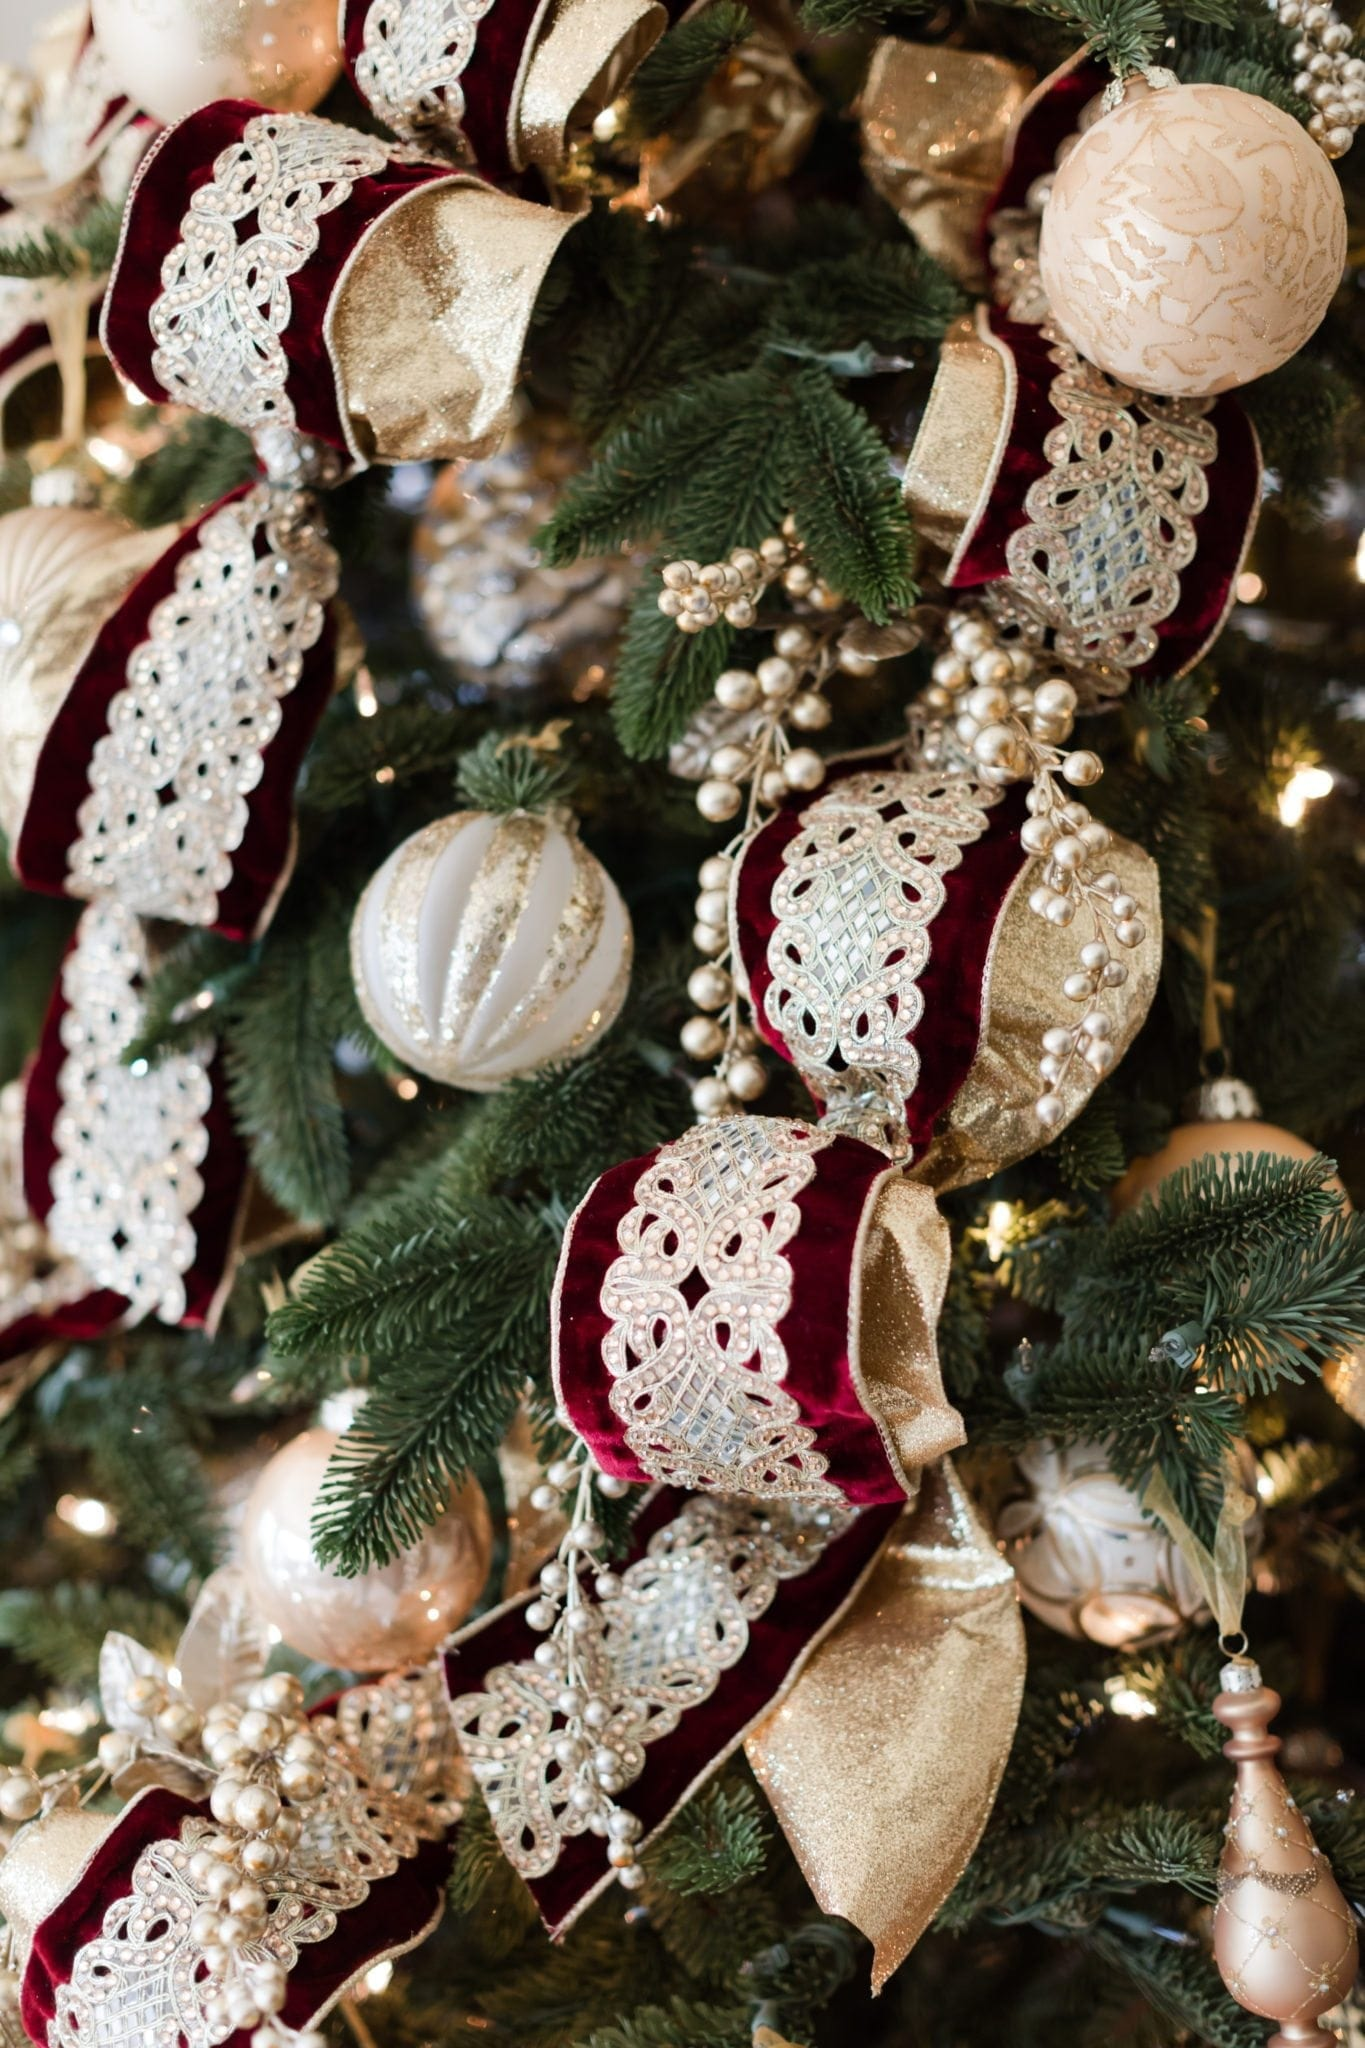 Ornament collection of gold and silver mixed in with ornate gold ribbon.